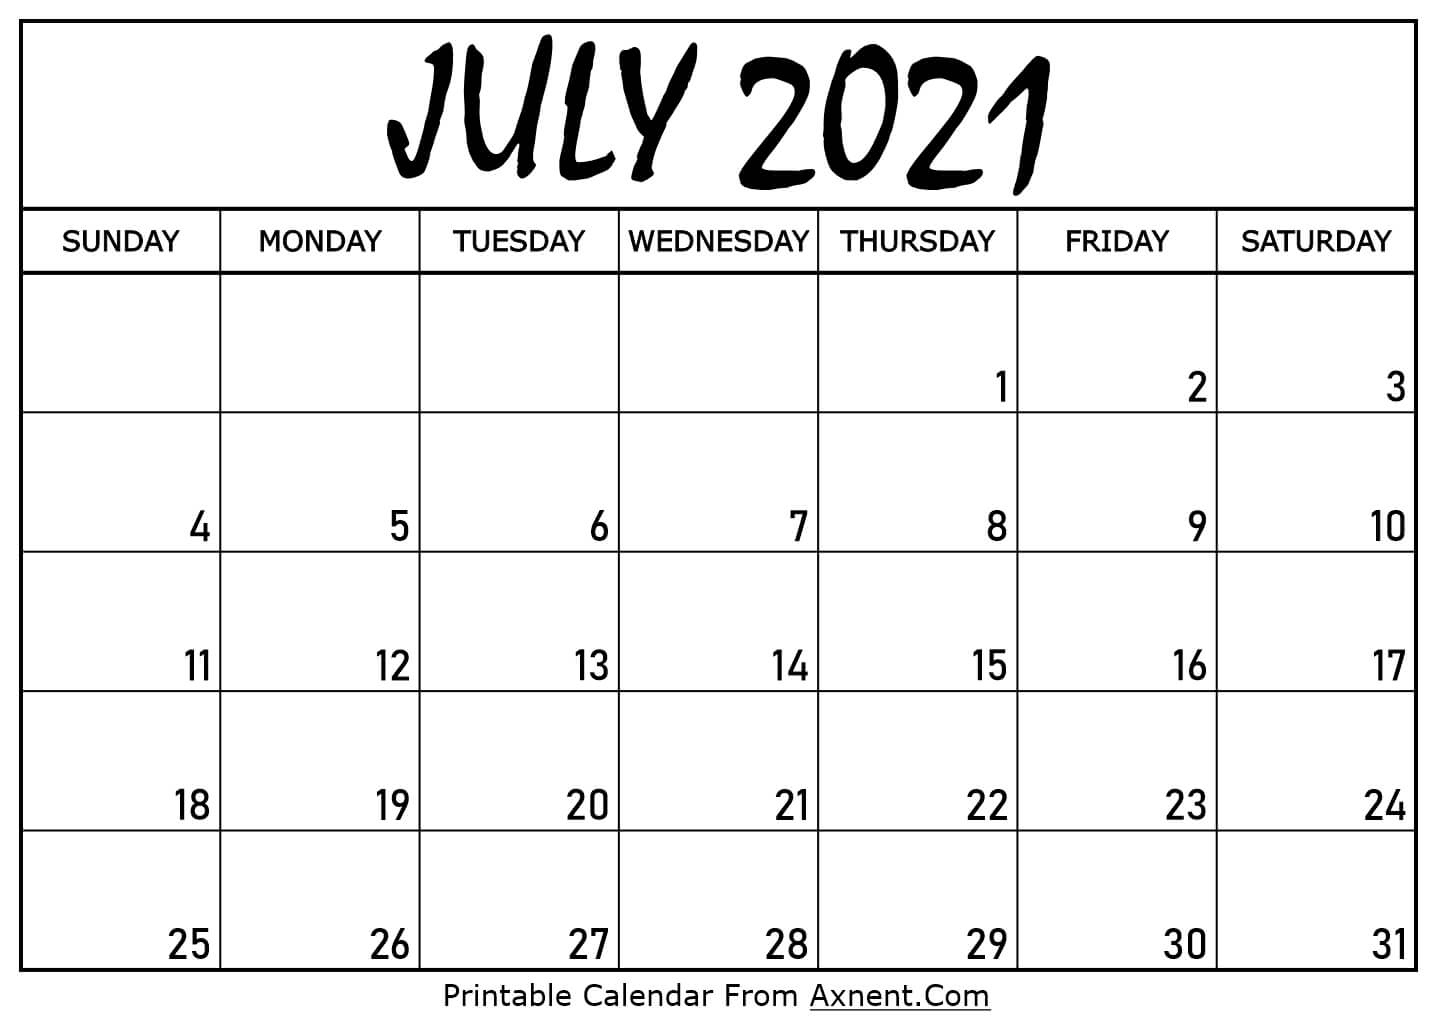 Printable July 2021 Calendar Template - Time Management Tools Printable July 2021 Calendar Template Printable July And August 2021 Calendar